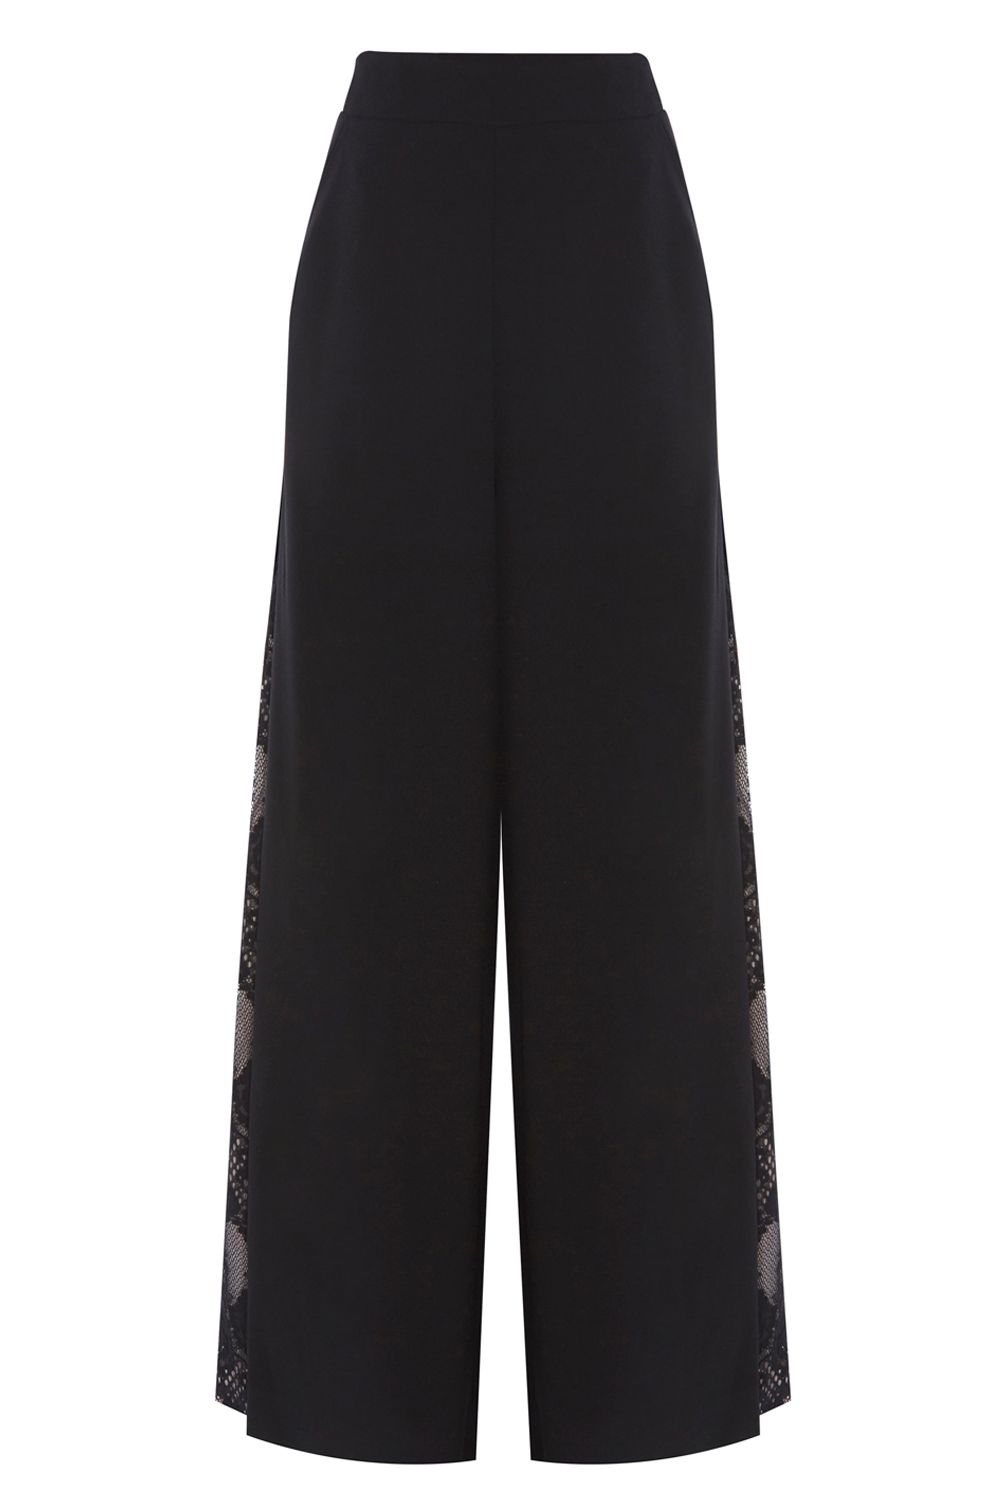 Coast Coast Zena Wide Leg Trousers, Black